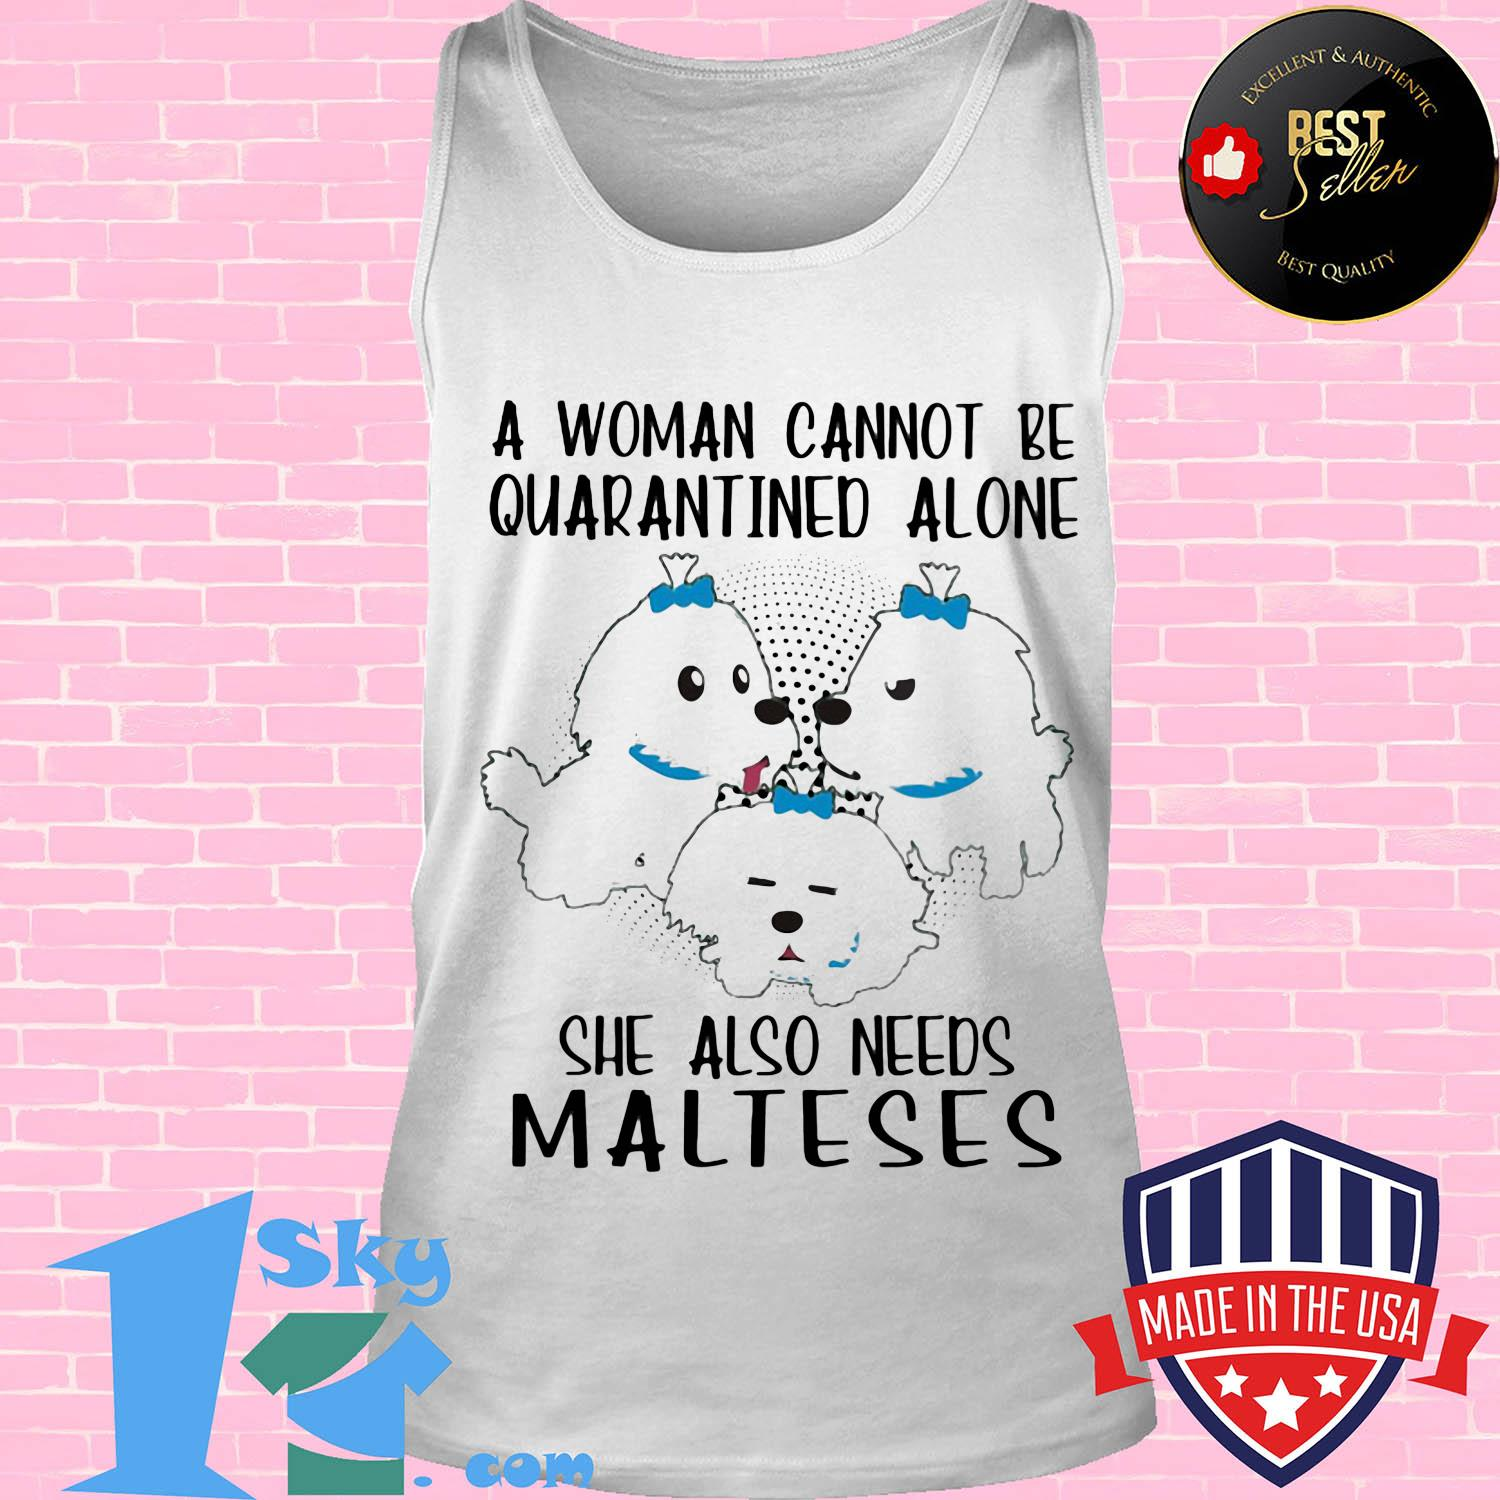 A woman cannot be quarantined alone she also needs malteses shirt